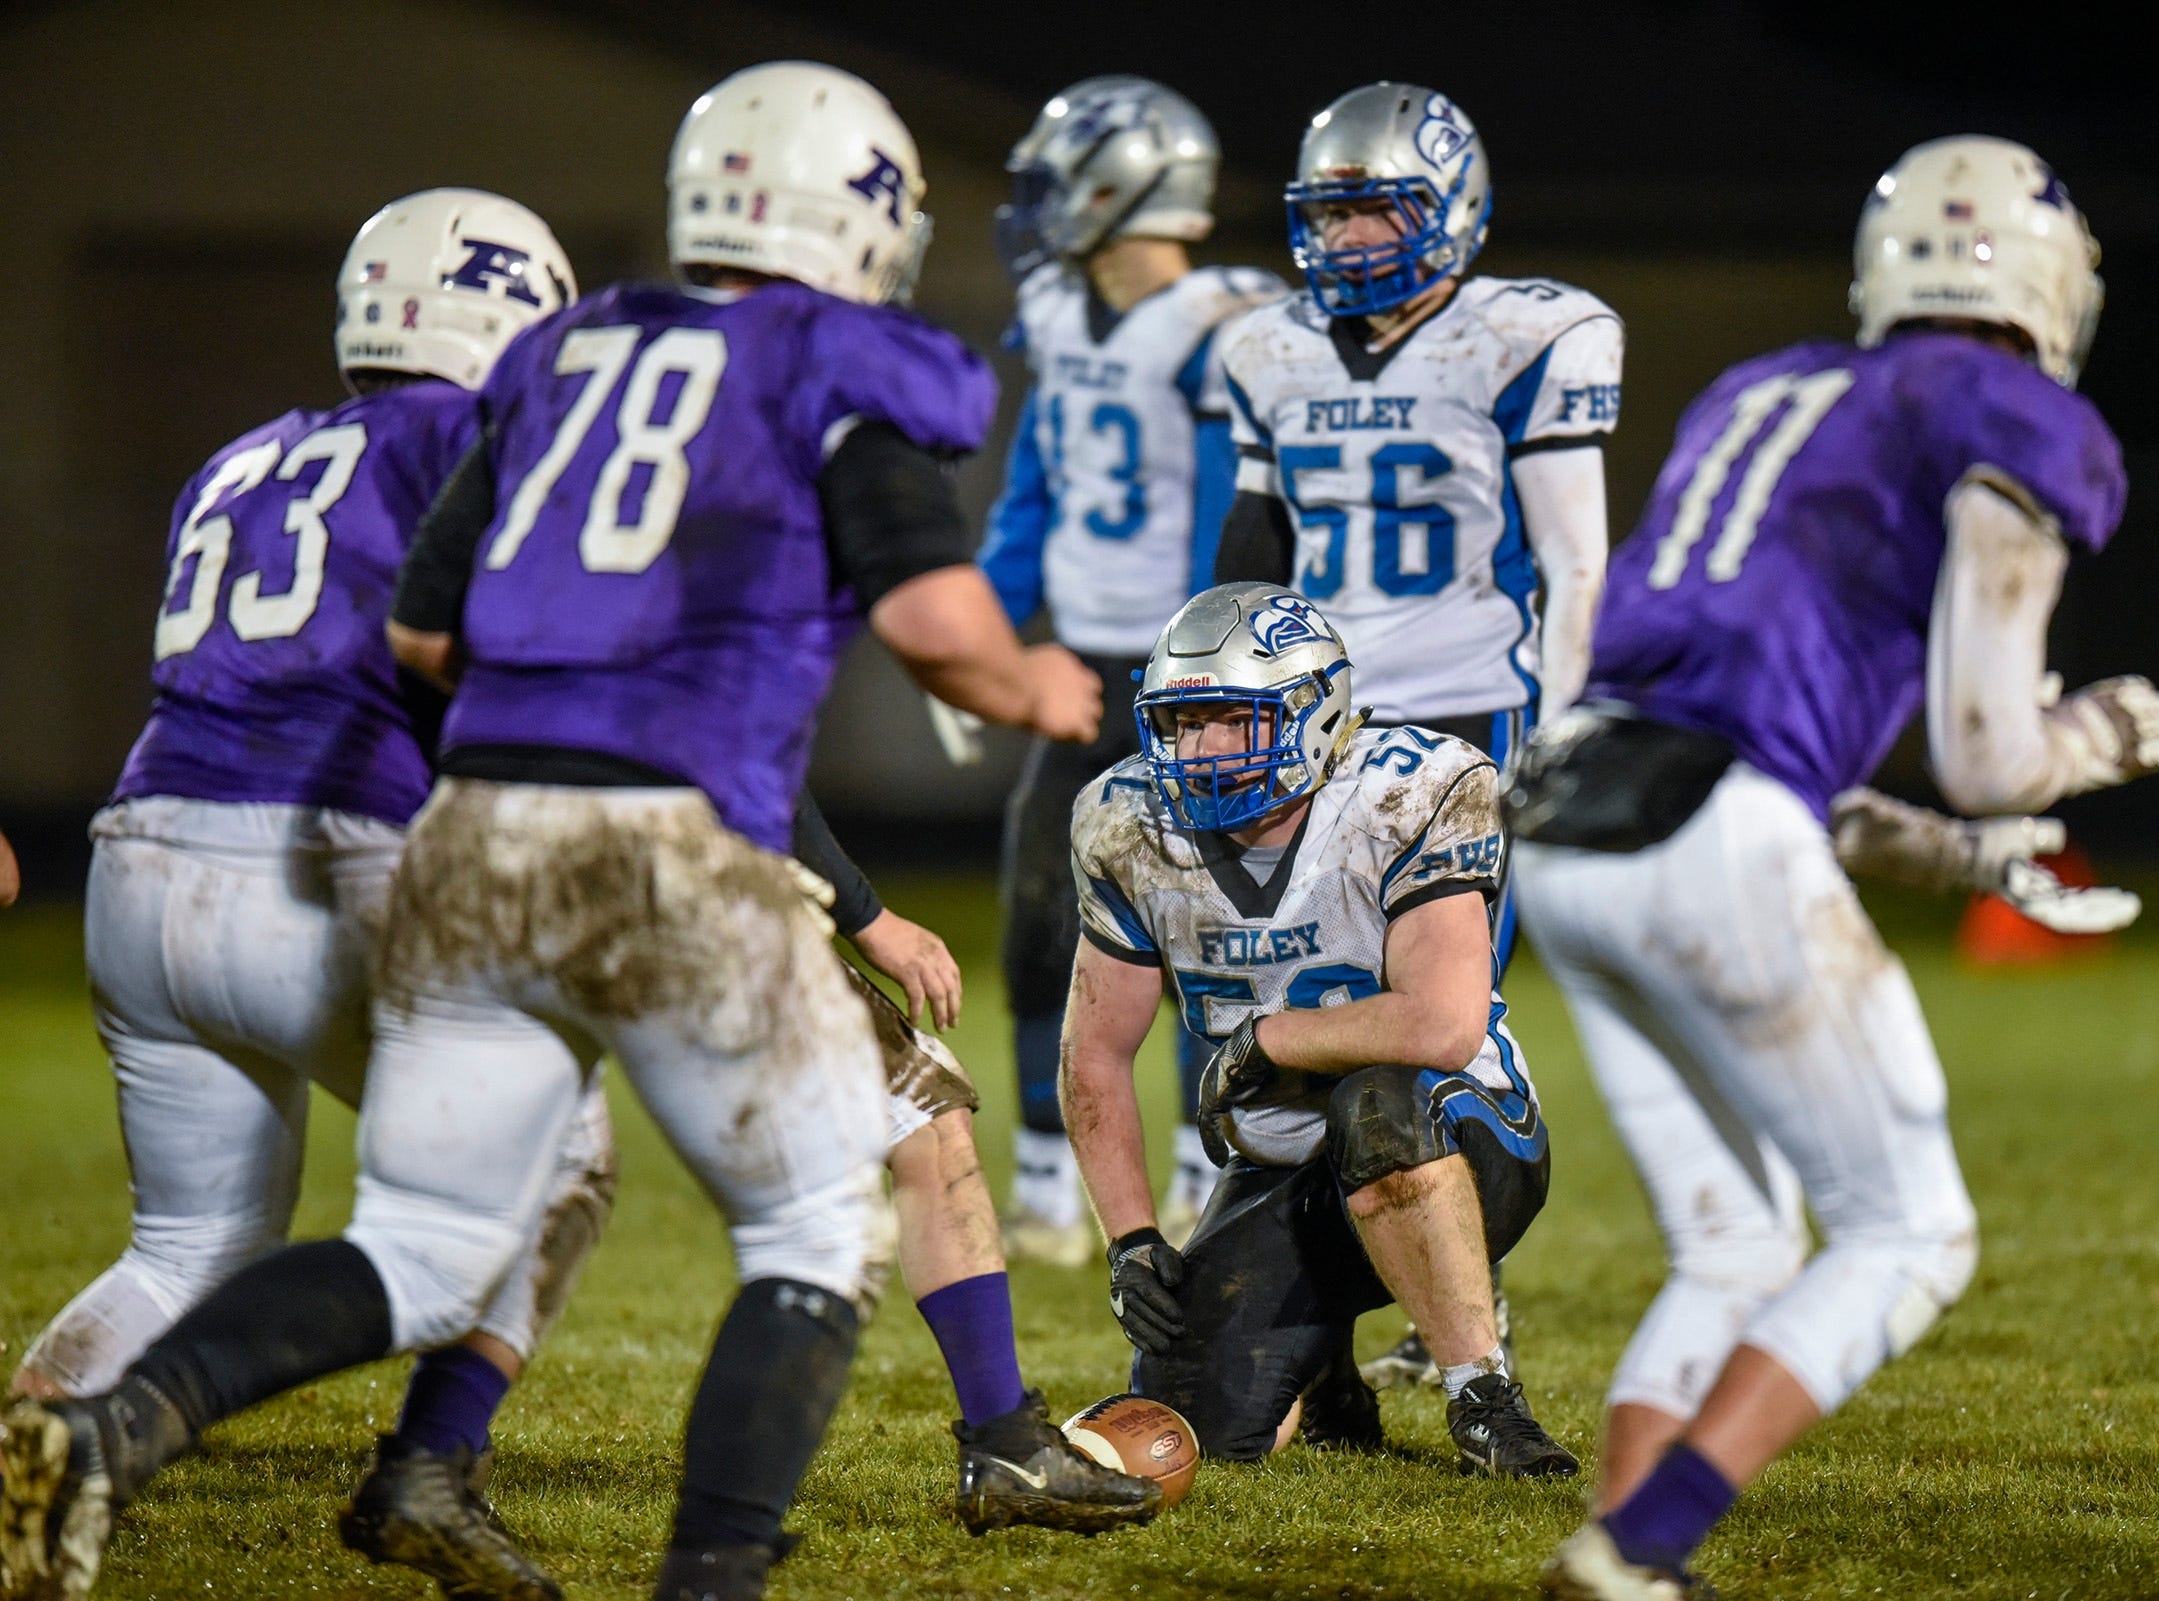 Foley's defense watches Albany's formation as they come to the line during the first half Friday, Oct. 12, in Albany.